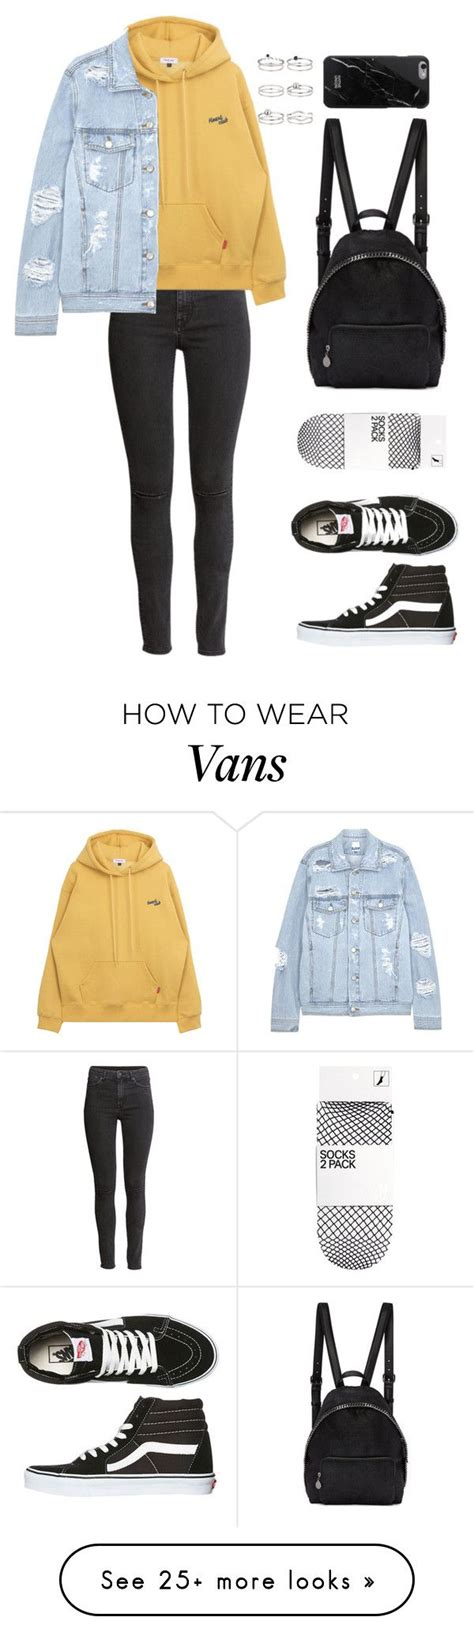 Best 25+ Tomboy outfits ideas on Pinterest | Tomboy inspiration Casual tomboy outfits and ...